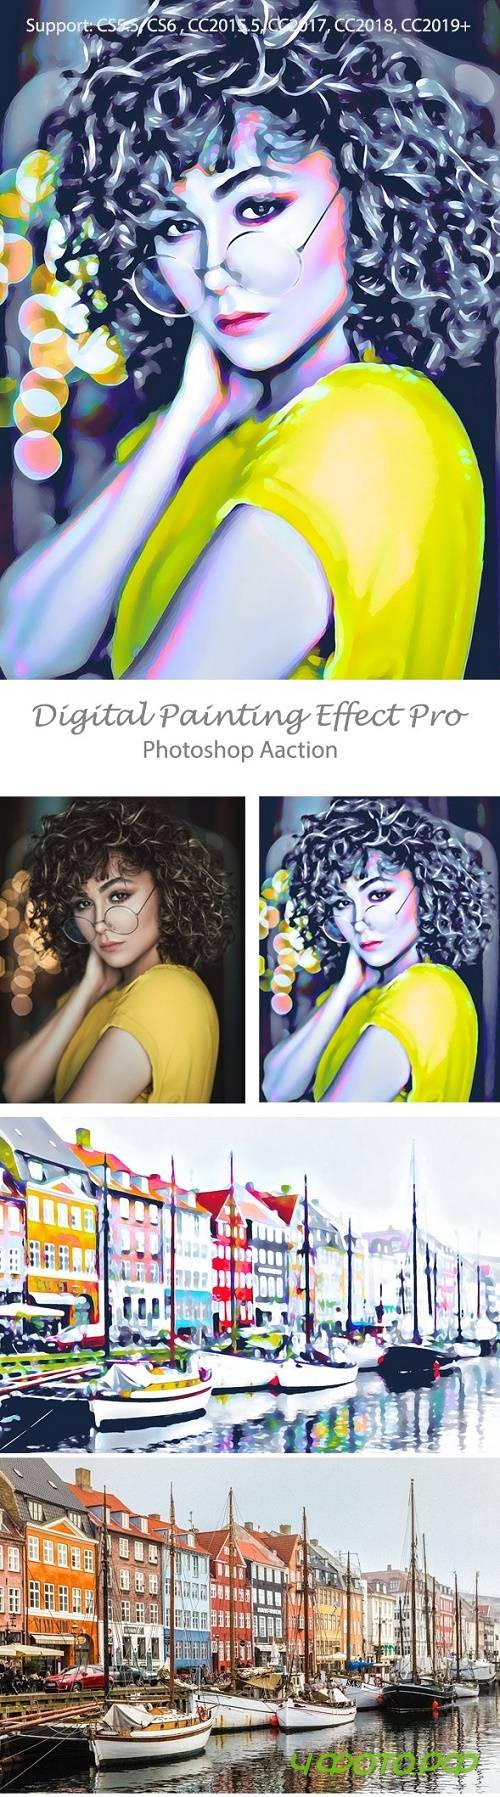 Digital Painting Effect Pro 23927222